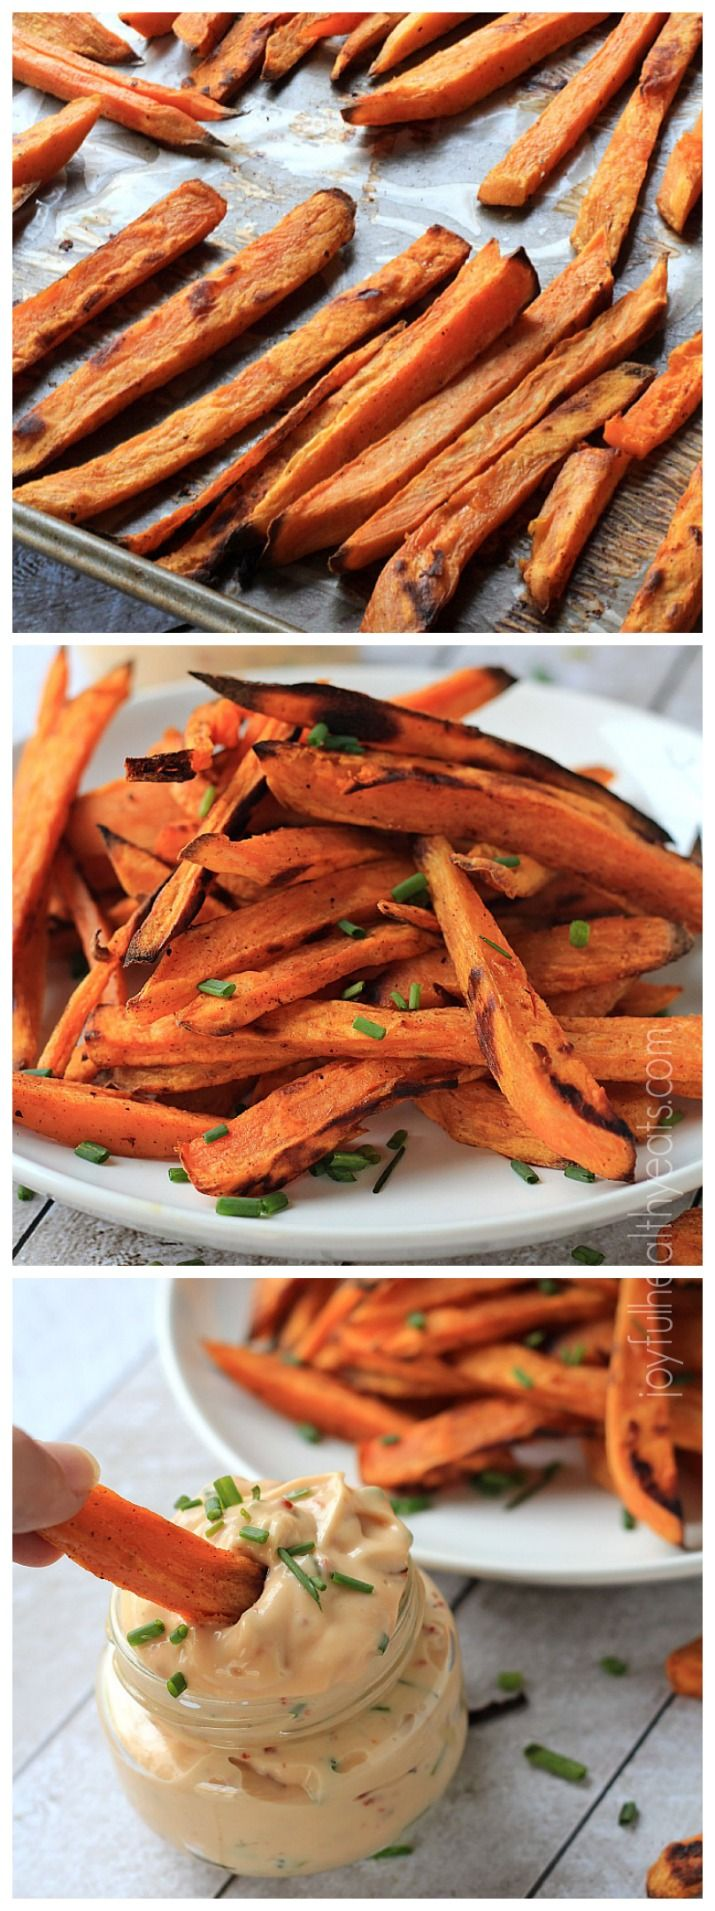 Officially addicted to these Sweet Potato Fries, and they're healthy because they're Baked. Plus a dynamite sauce! (joyfulhealthyeats)